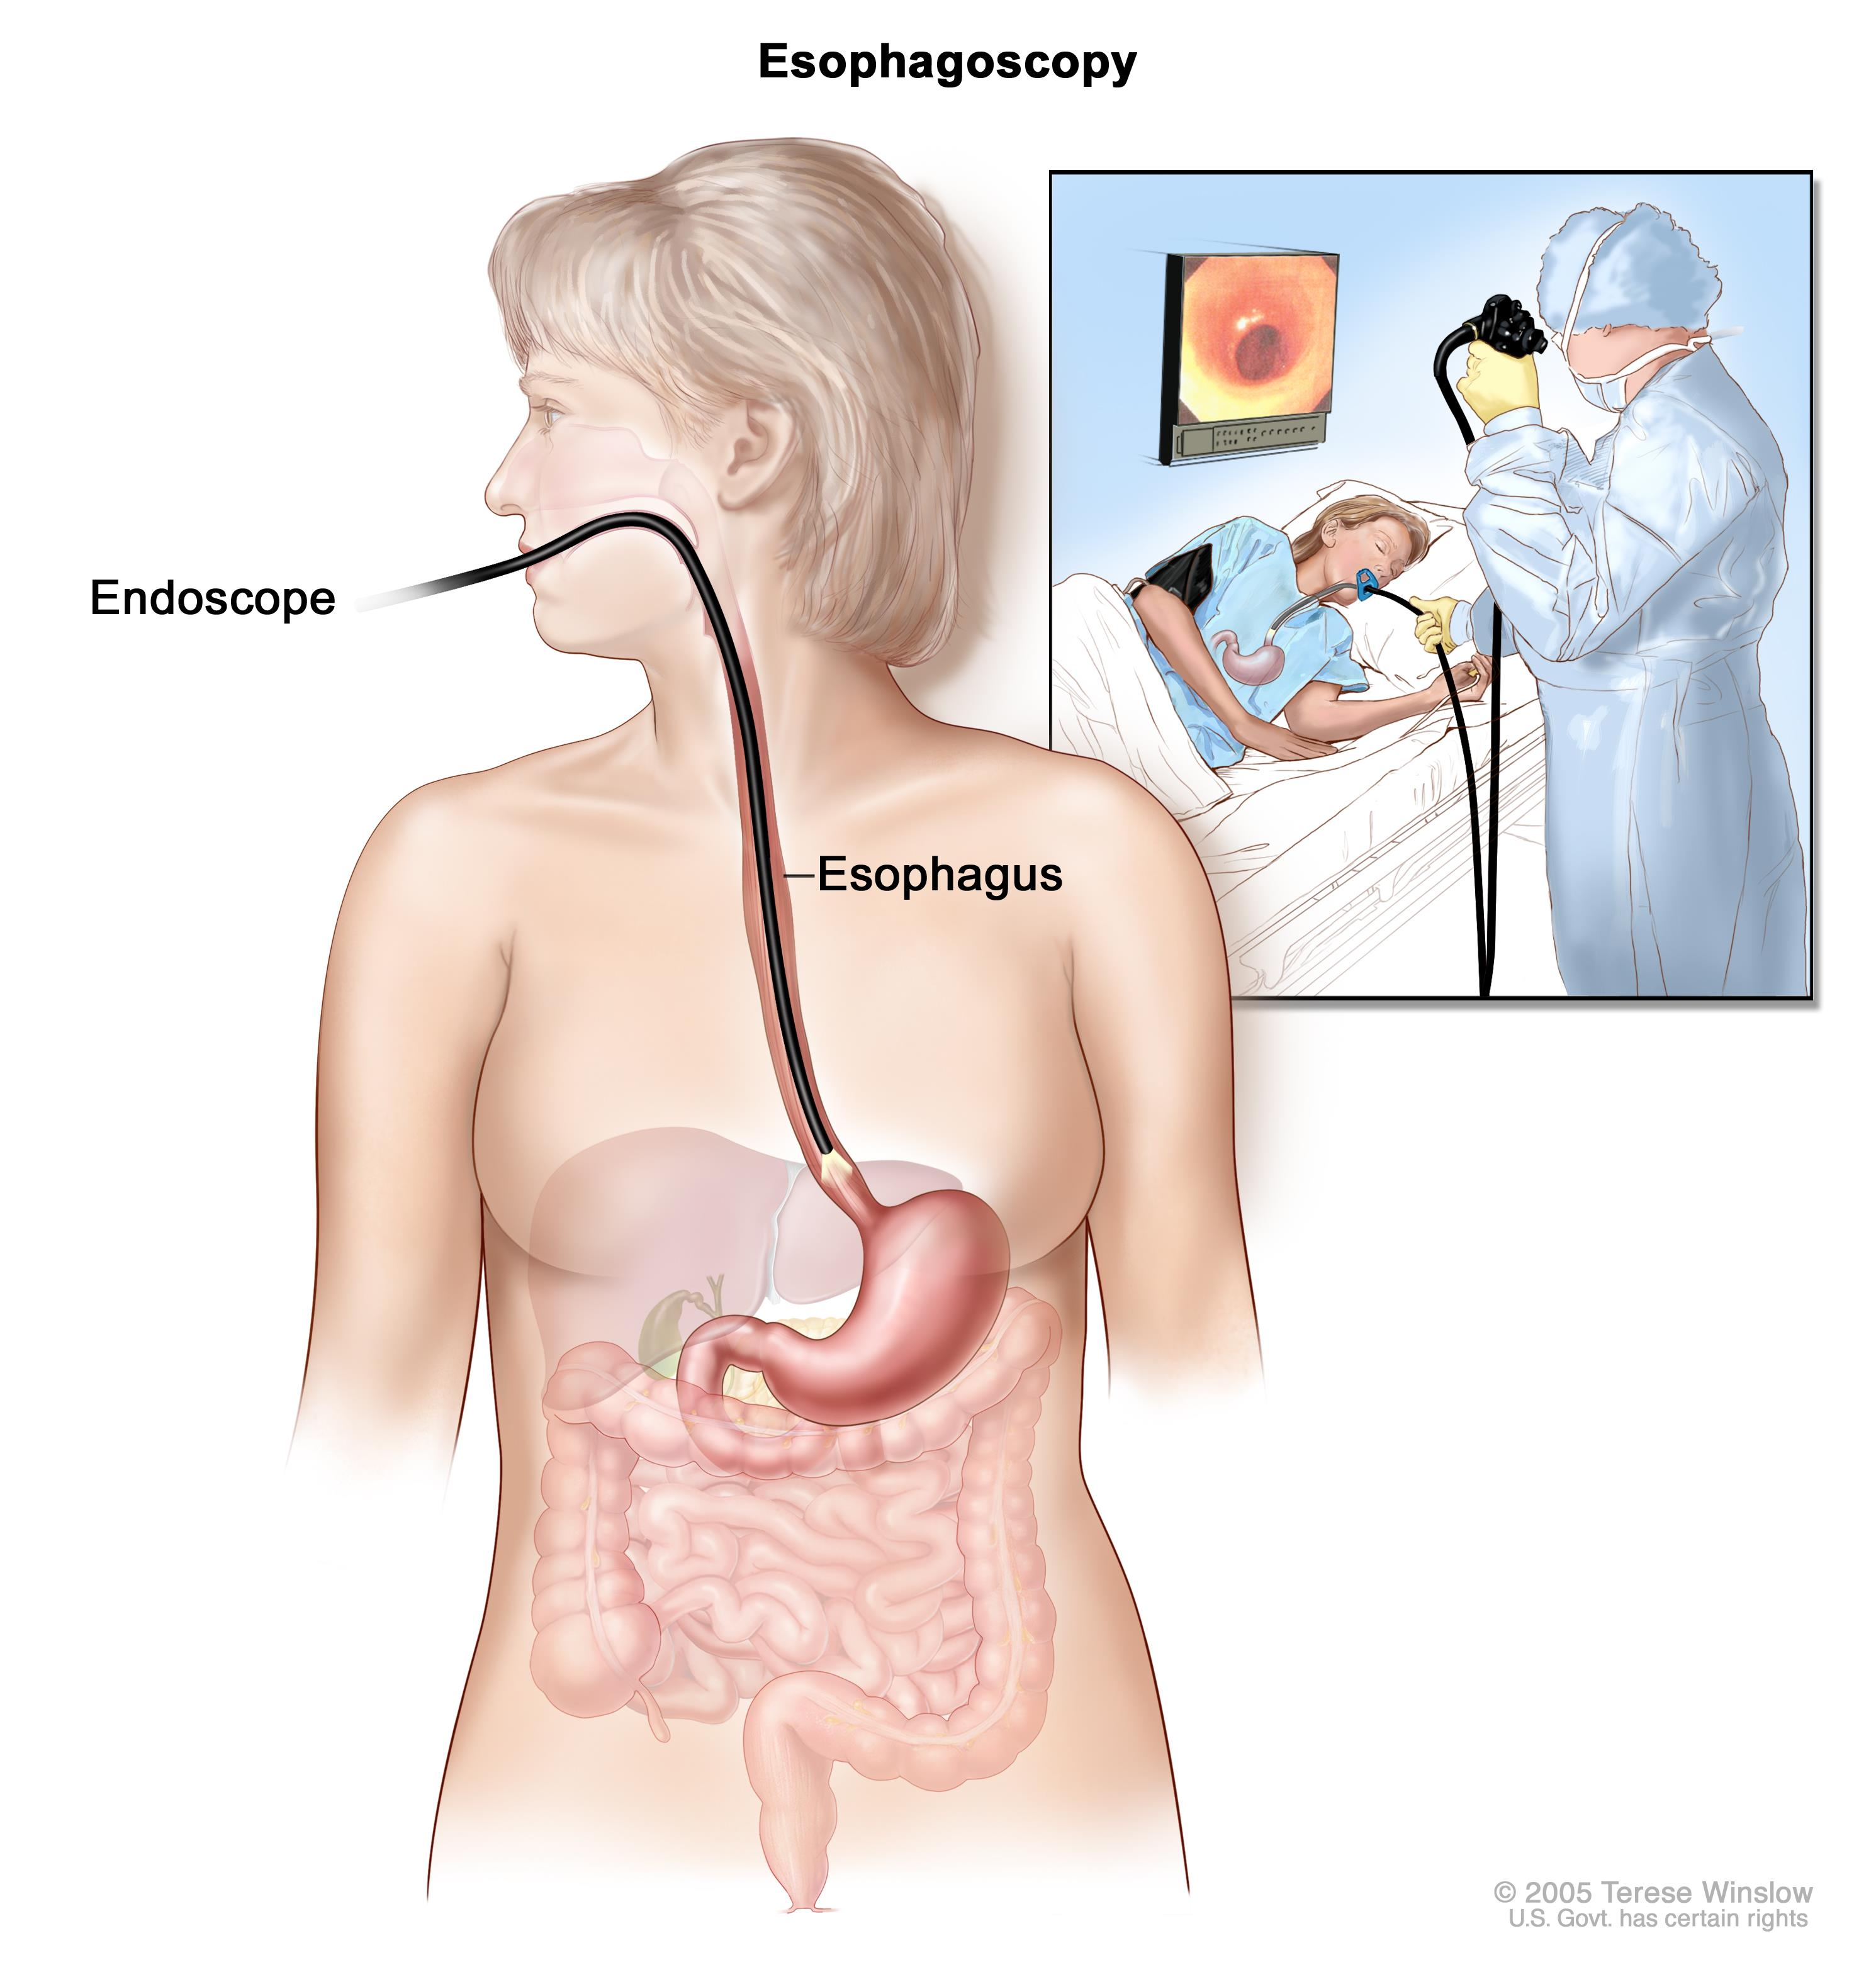 How to Diagnose and Treat Esophageal Cancer